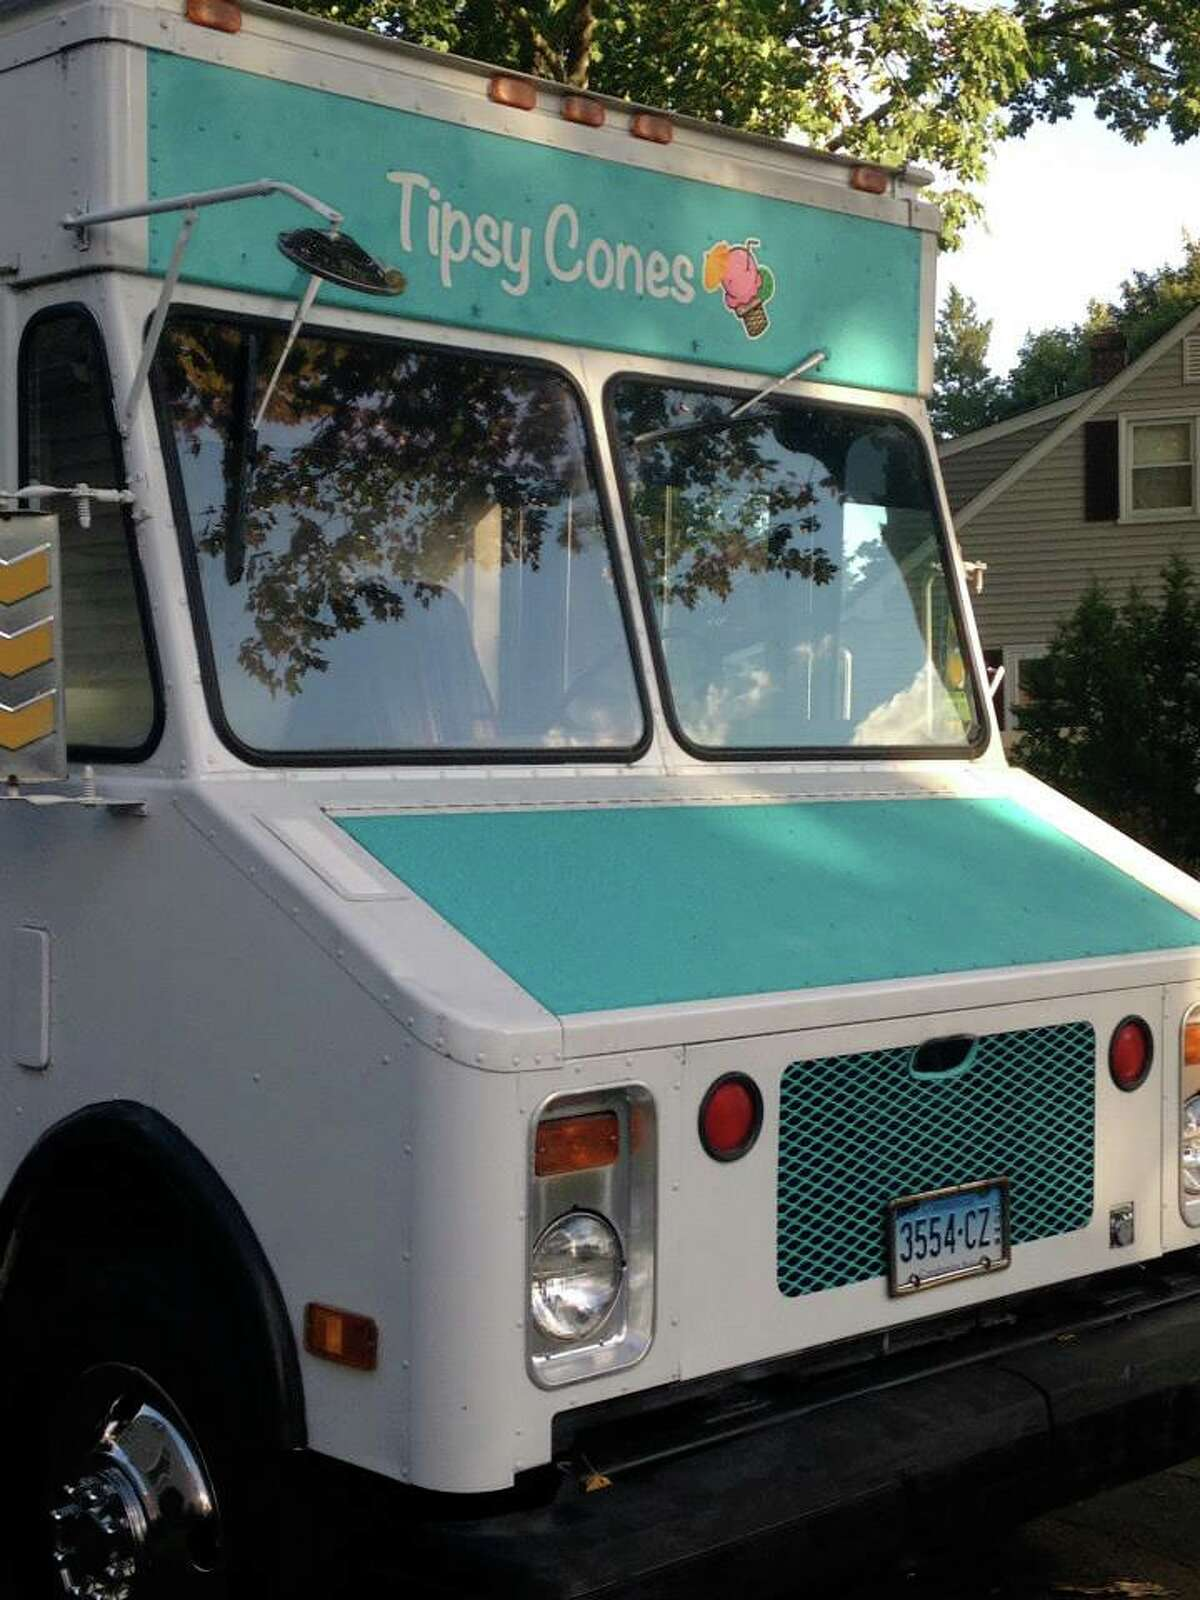 Tipsey Cones of Stratford will participate in the 1st New England Food Truck Affair in North Haven on Aug. 1-2.